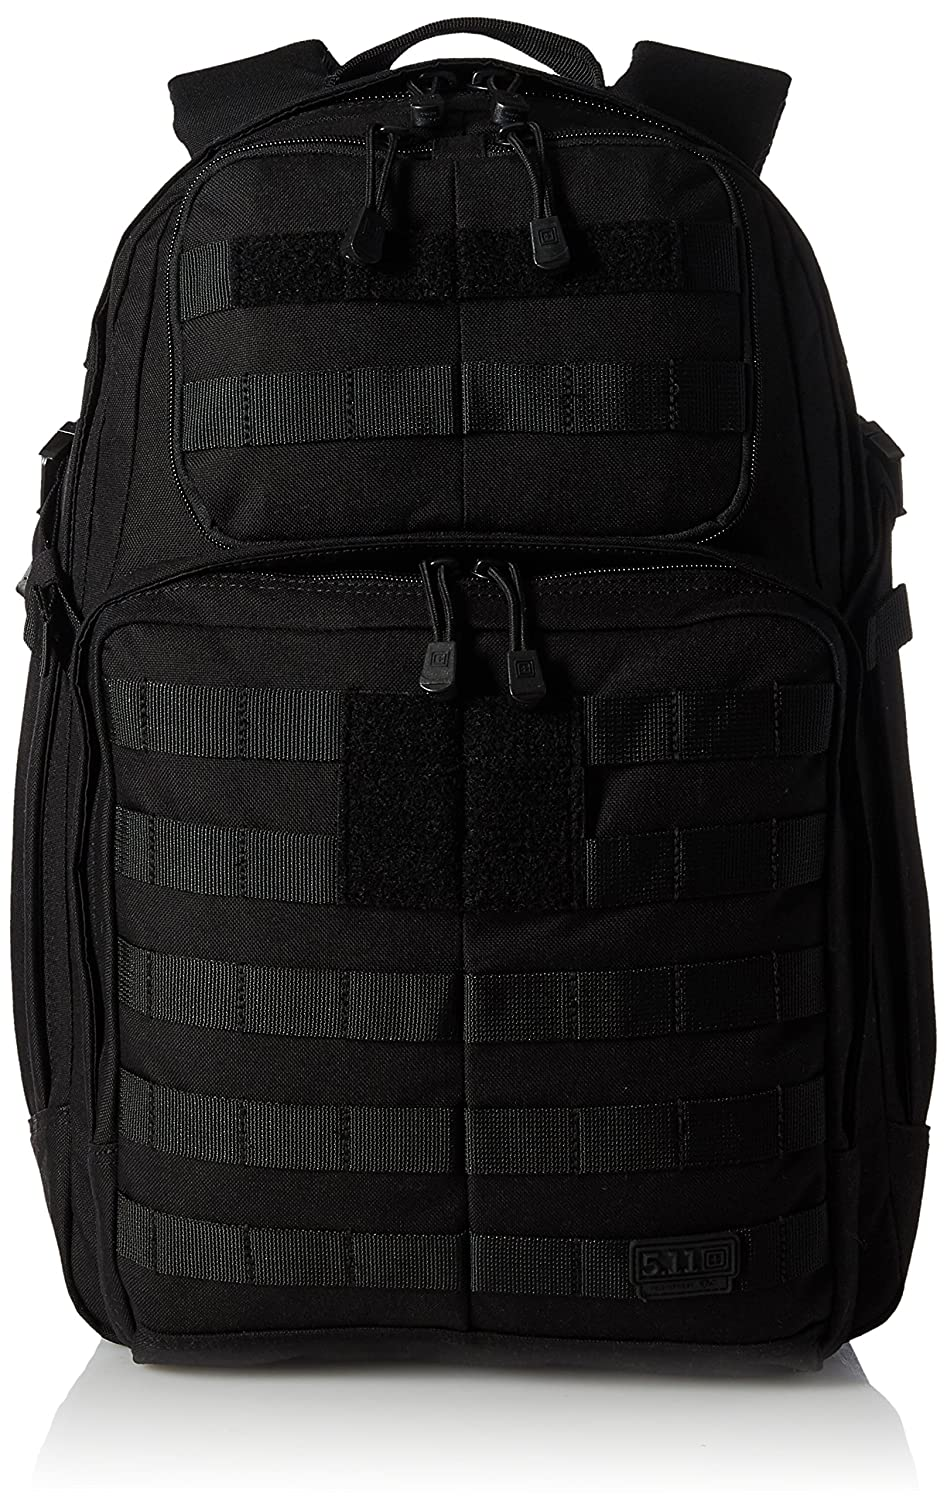 5.11 Rush24 Tactical Backpack For Military, Bug Out Bag, Medium, Style 58601 by 5.11